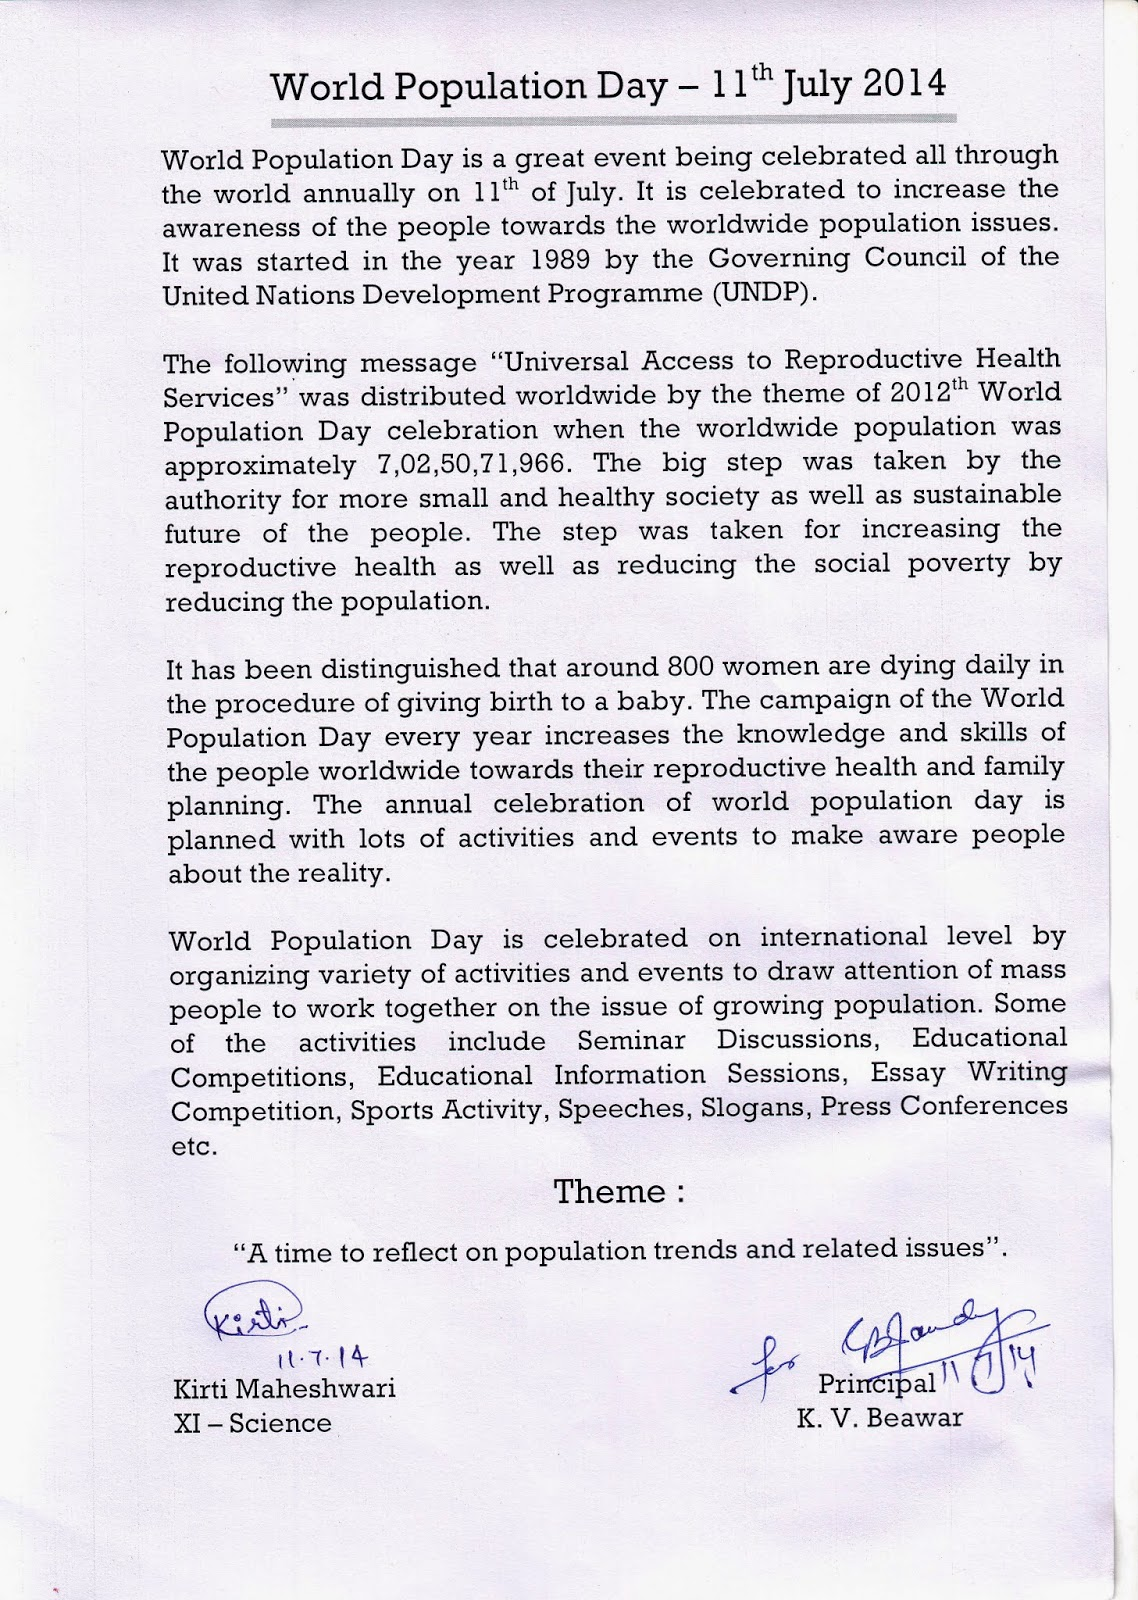 essay on world population persuasive essay on overpopulation  readers club kv beawar world population day posted by amarnath lakhiwal at 04 29